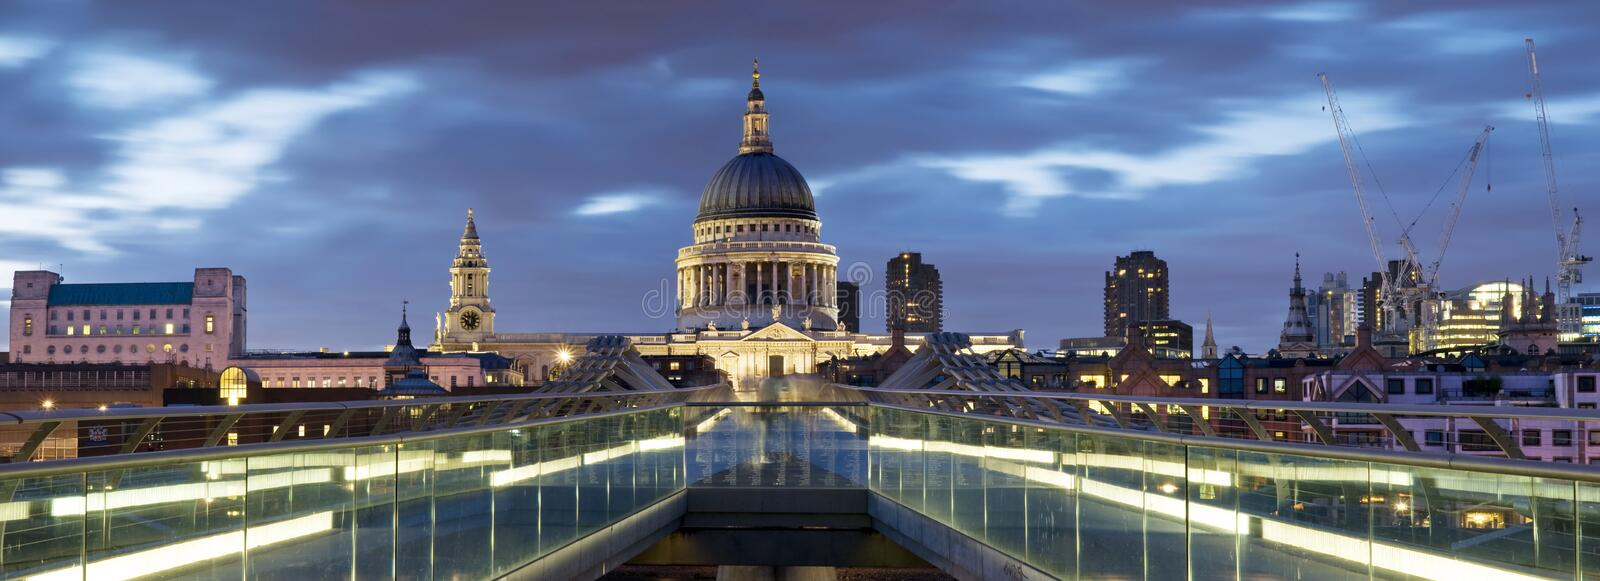 St. Paul's Cathedral, London. royalty free stock photos